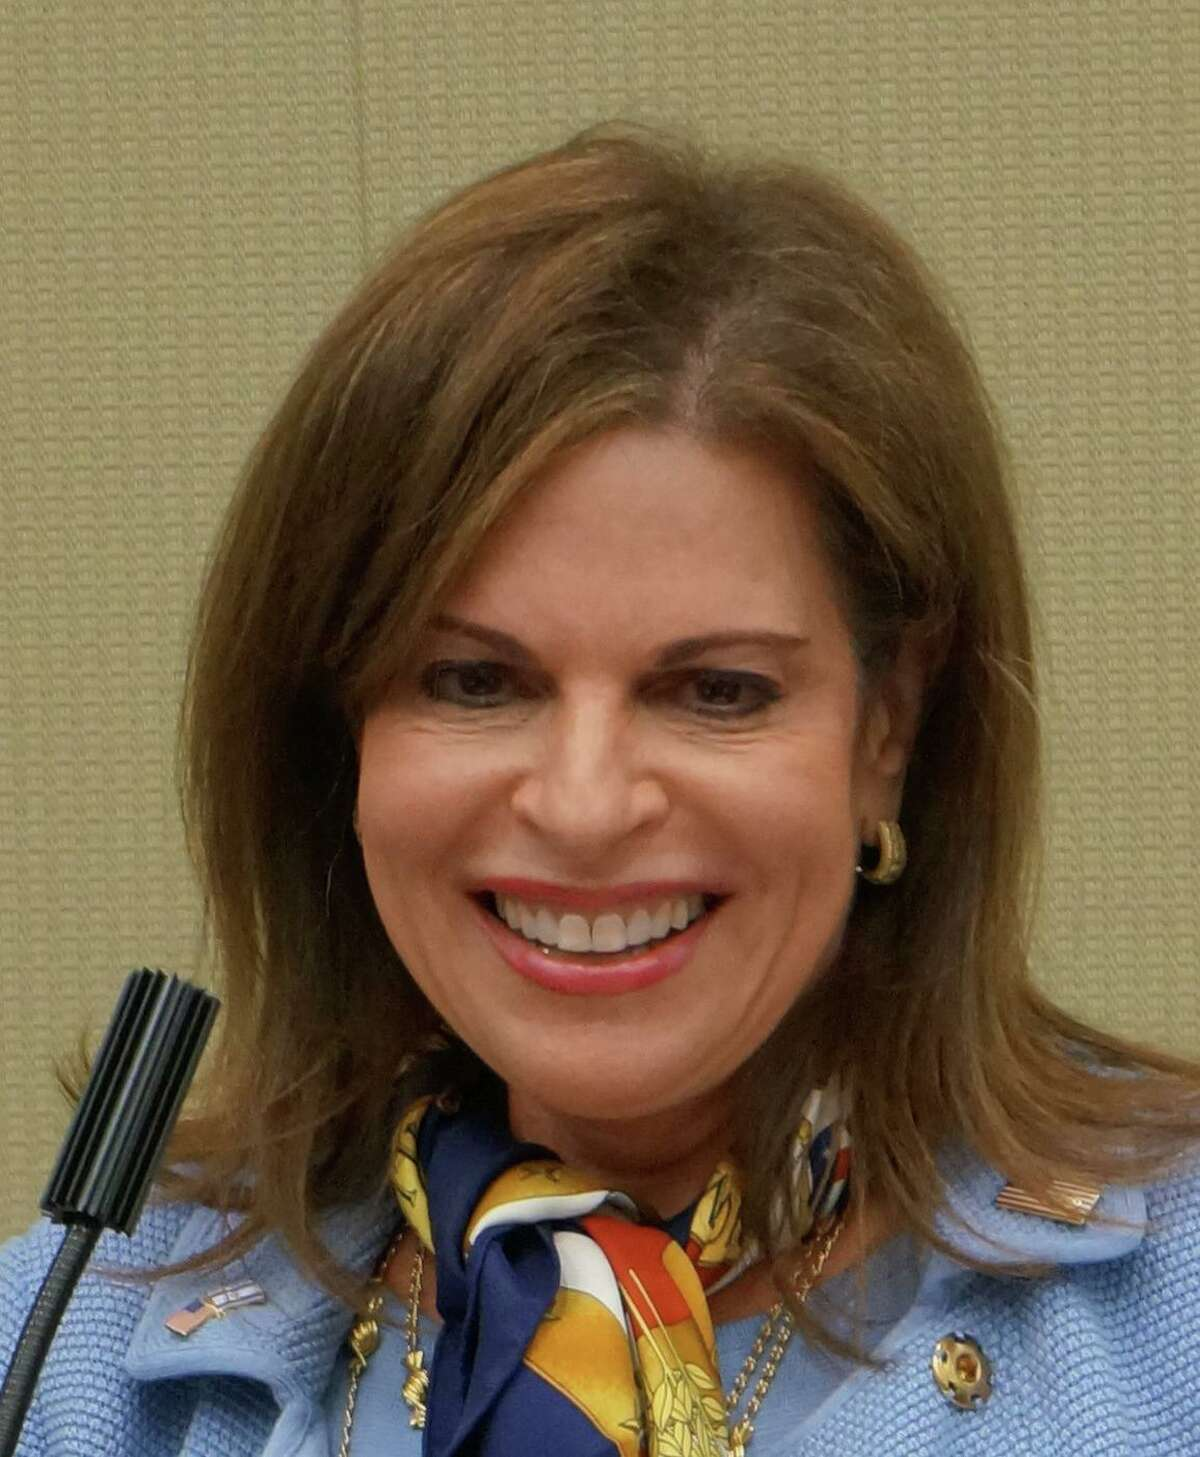 Leora Levy of Greenwich is seeking the Republican nomination to run for the state Senate.